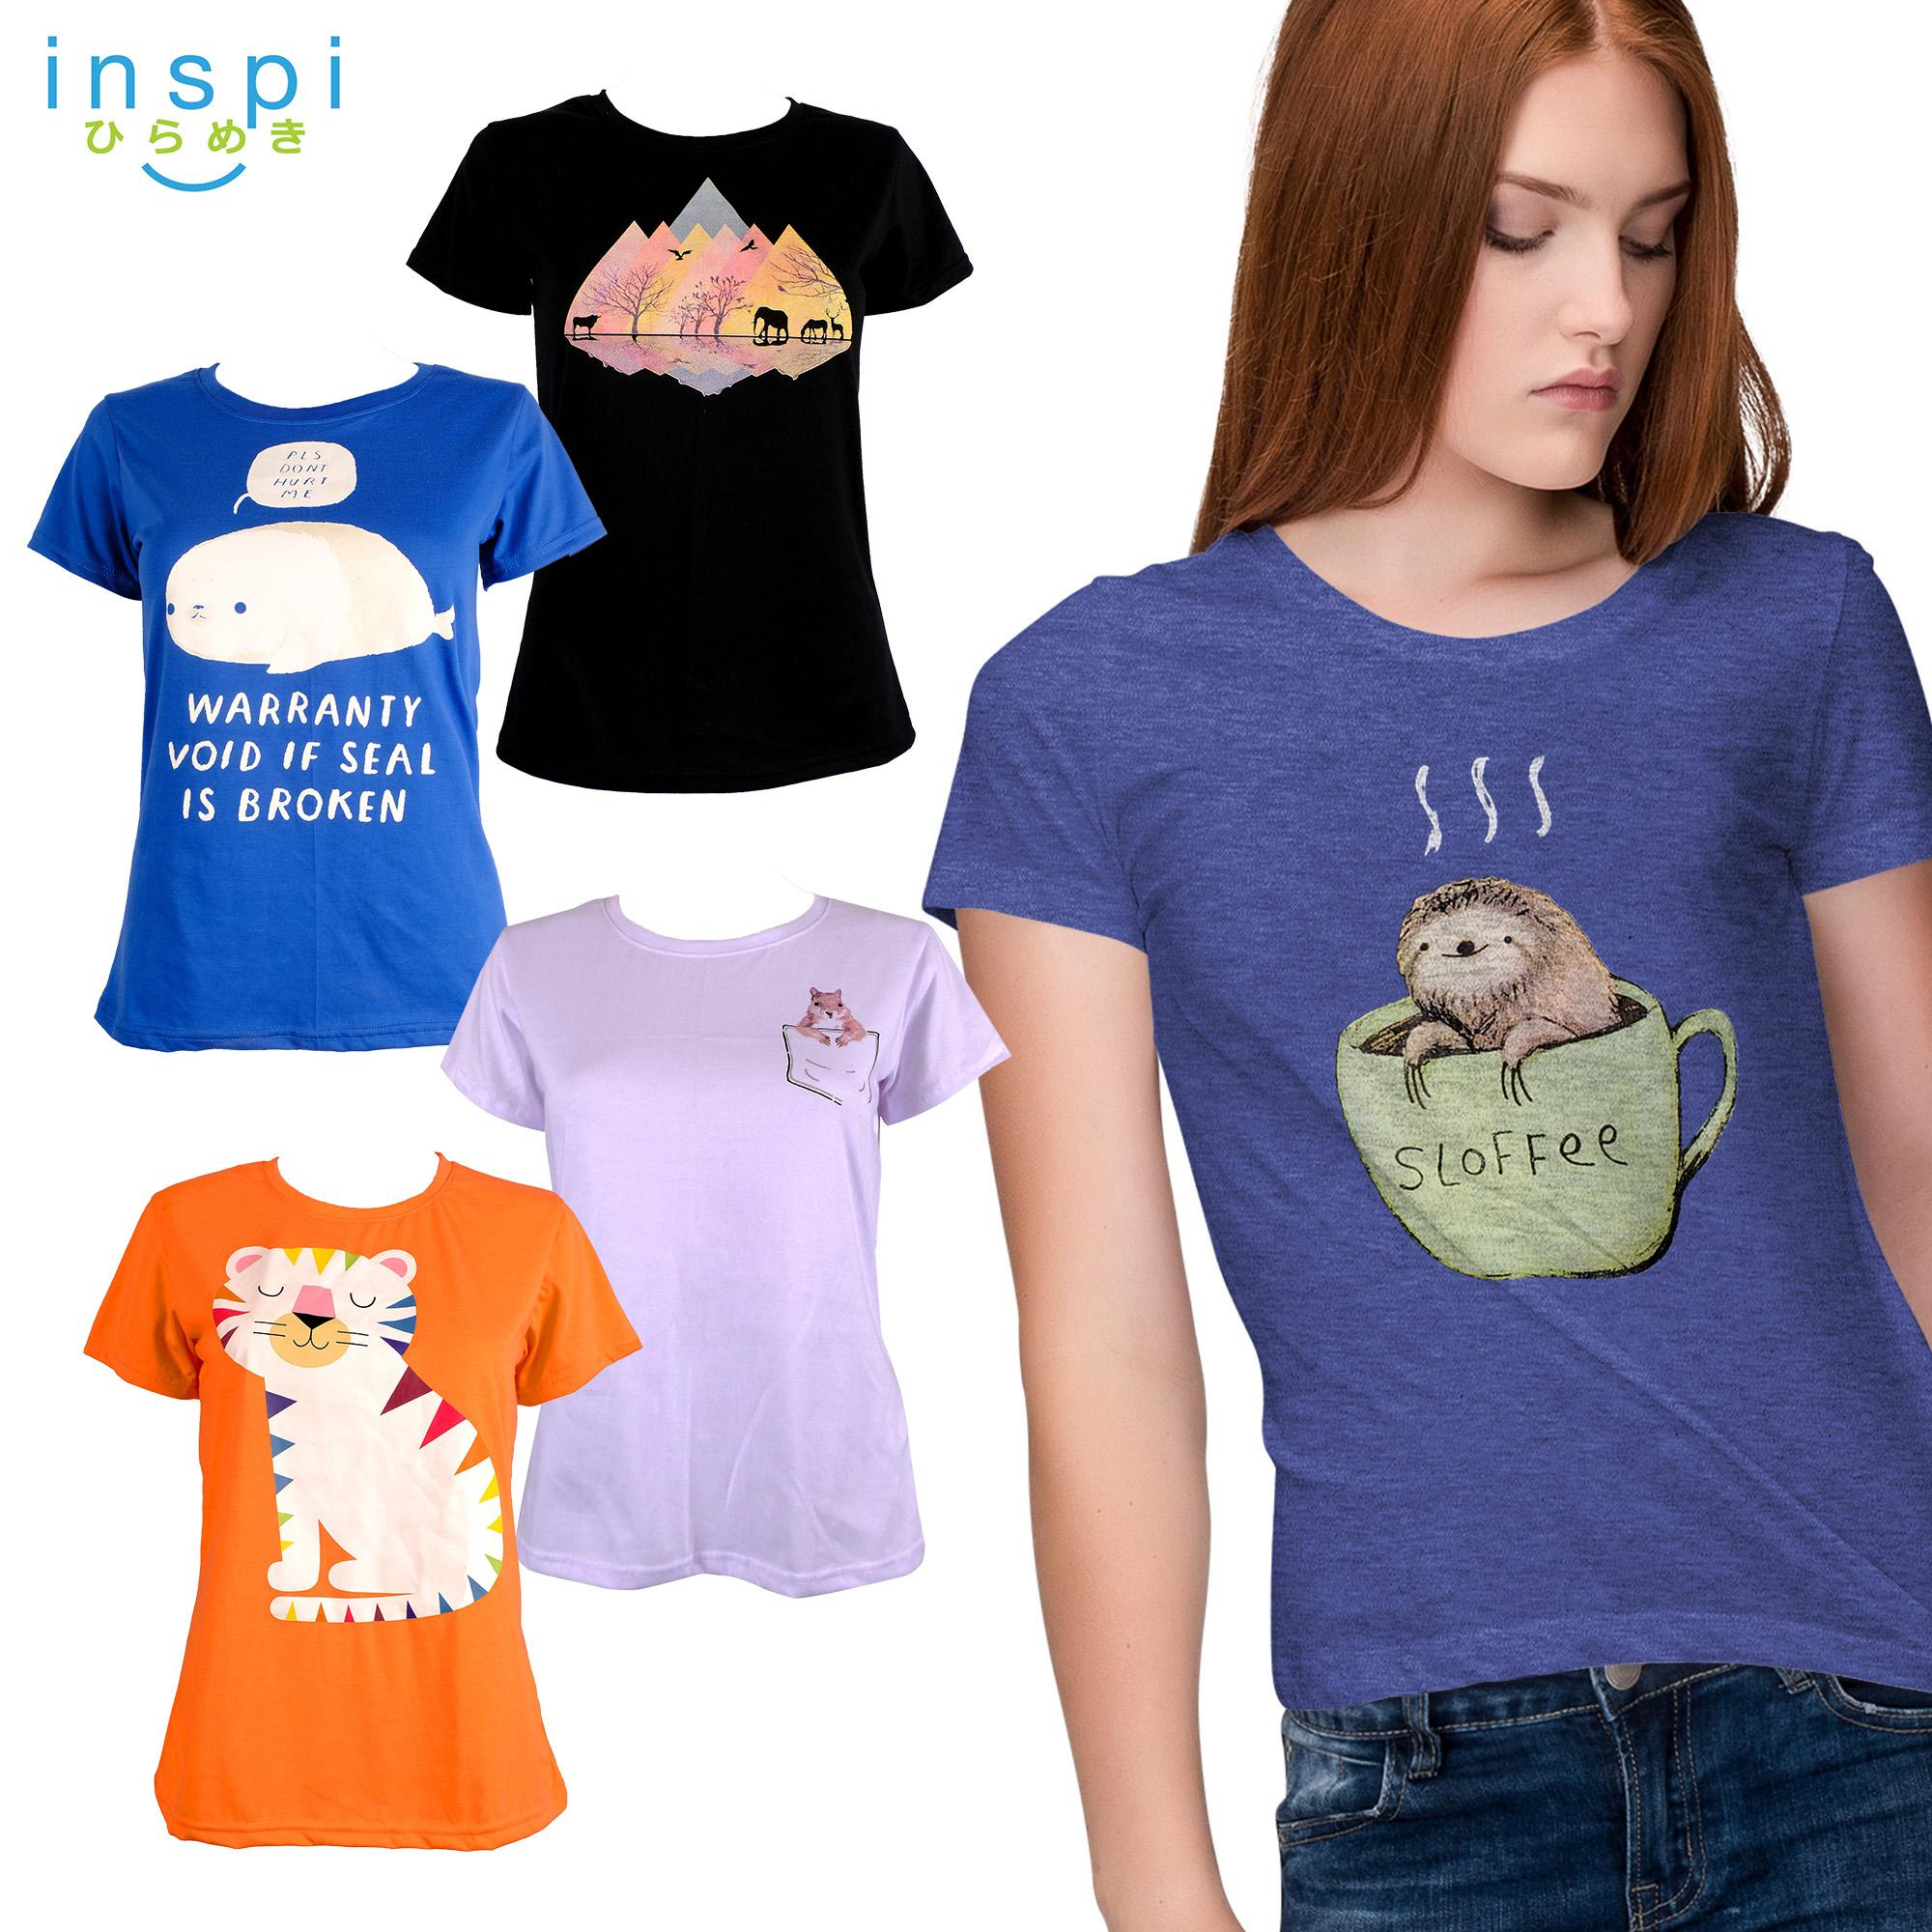 8c815e1a38d INSPI Tees Ladies Pet Collection tshirt printed graphic tee Ladies t shirt  shirts women tshirts for